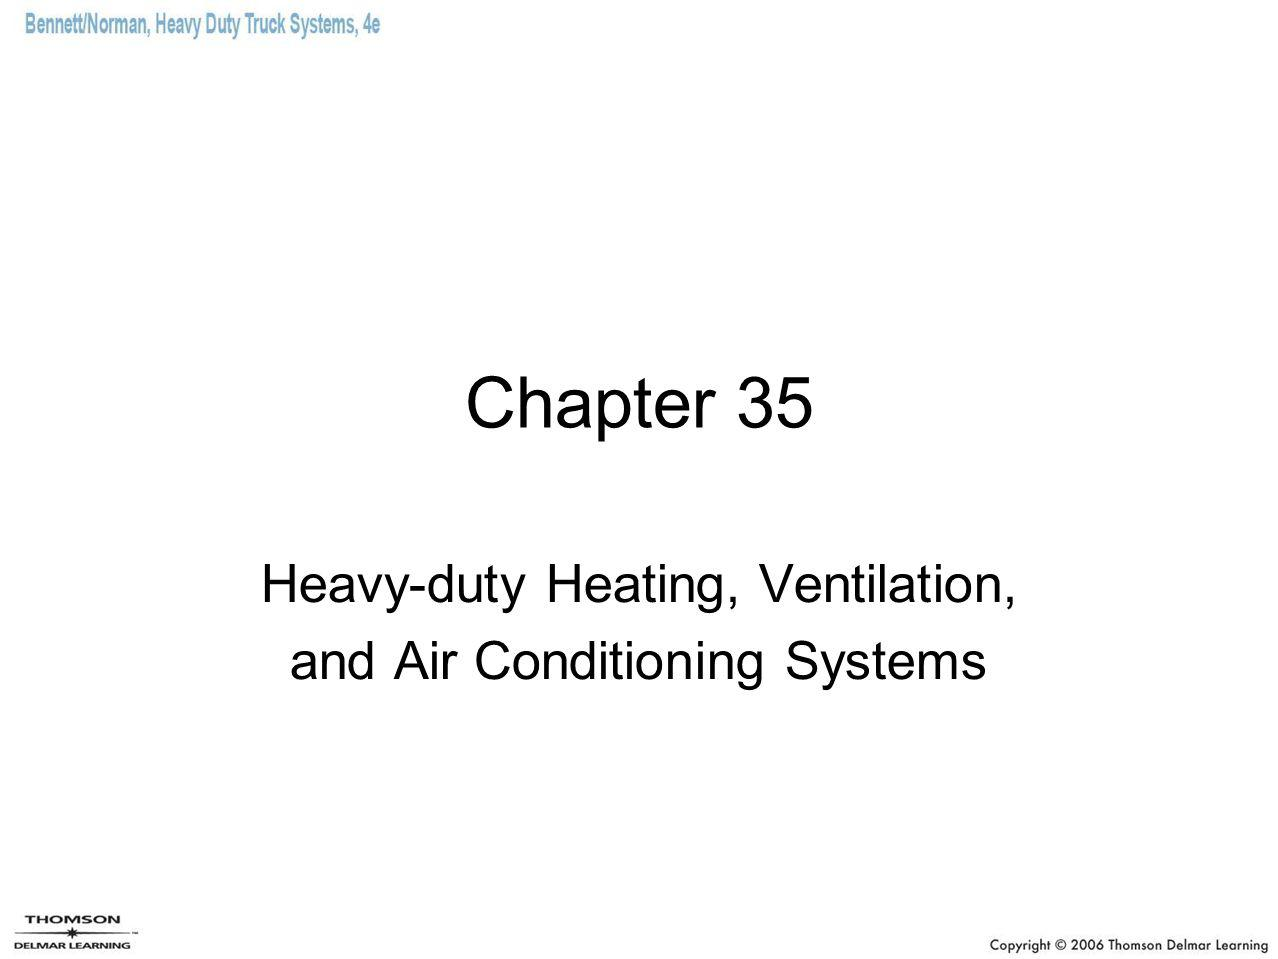 Chapter 35 Heavy-duty Heating, Ventilation, and Air Conditioning Systems